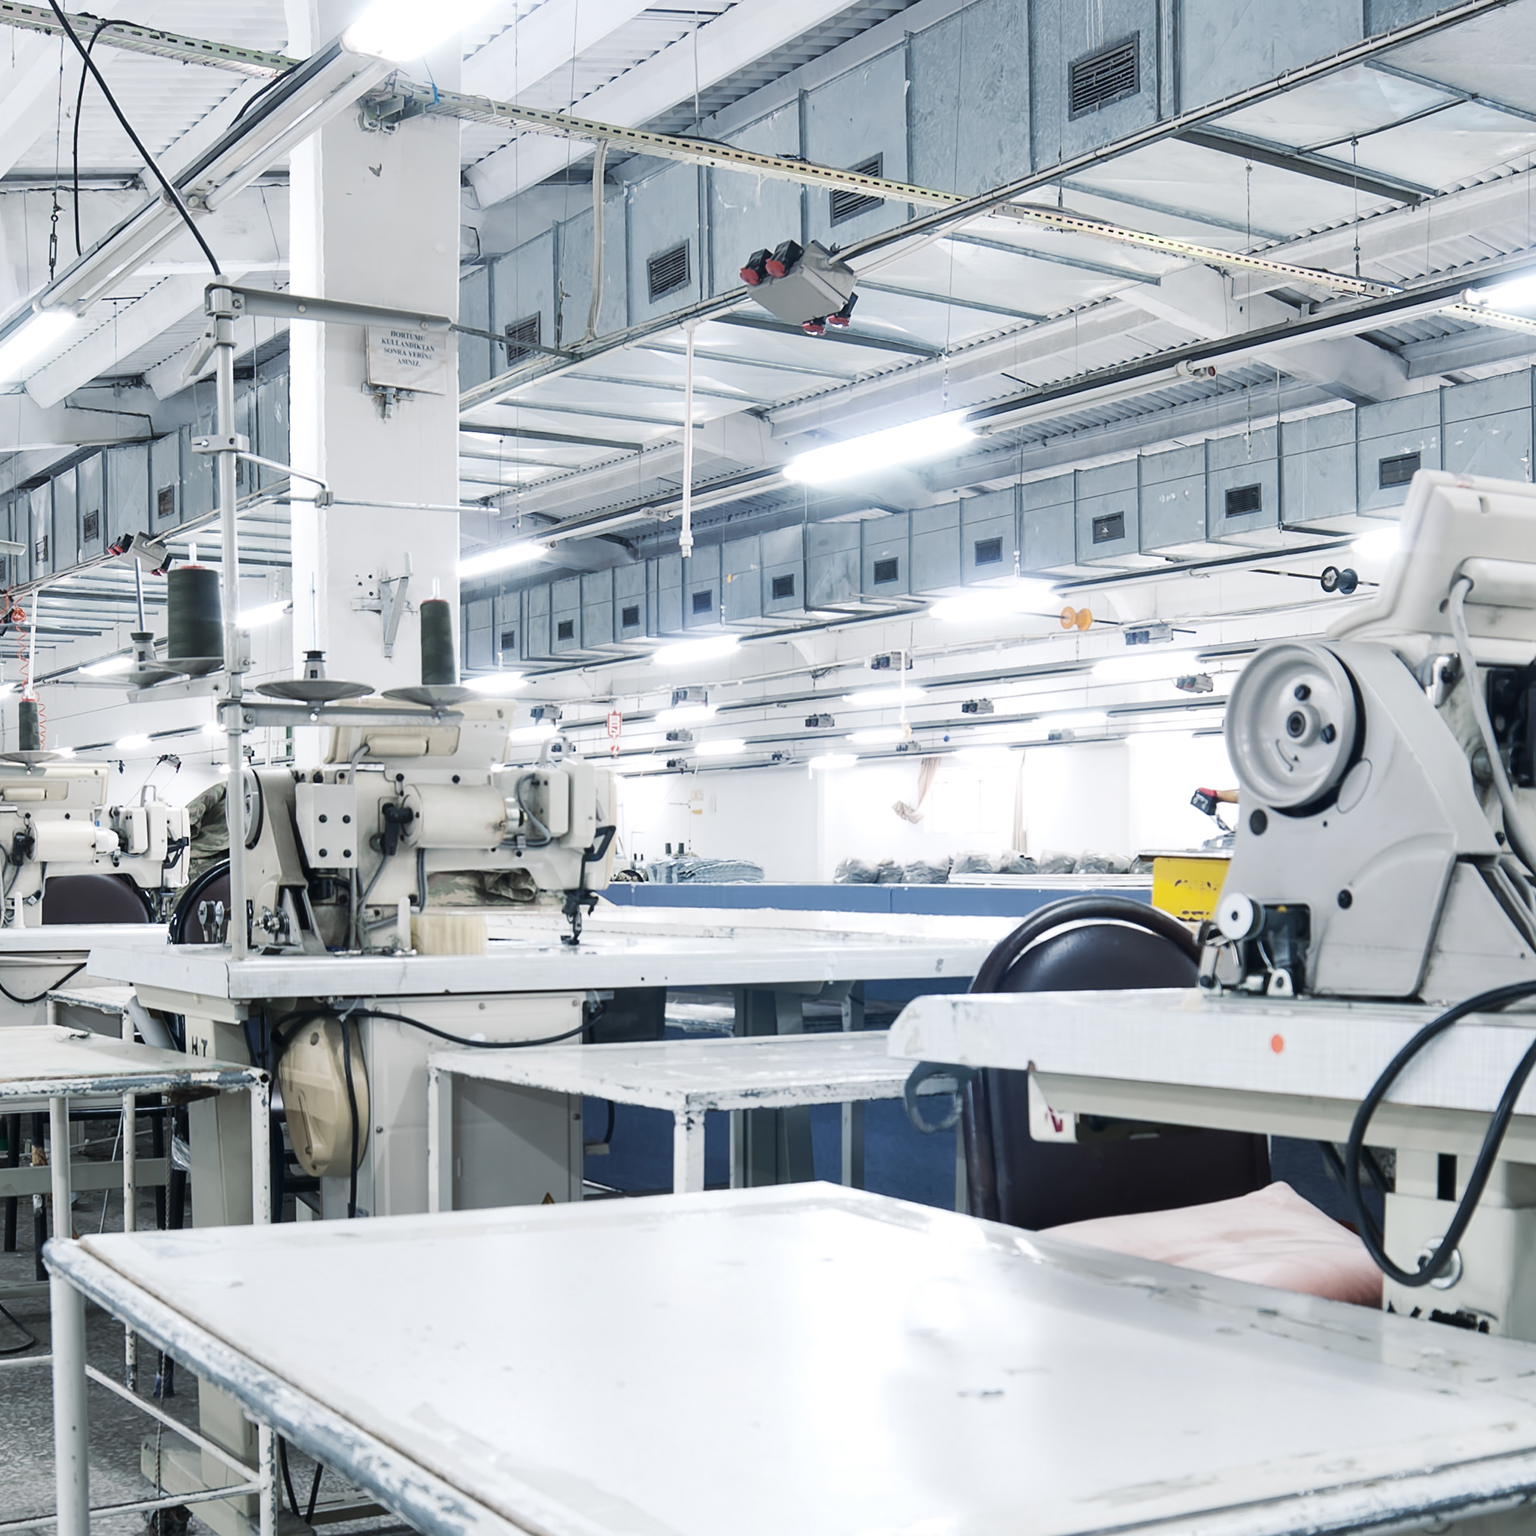 mckinsey.com - Is apparel manufacturing coming home?